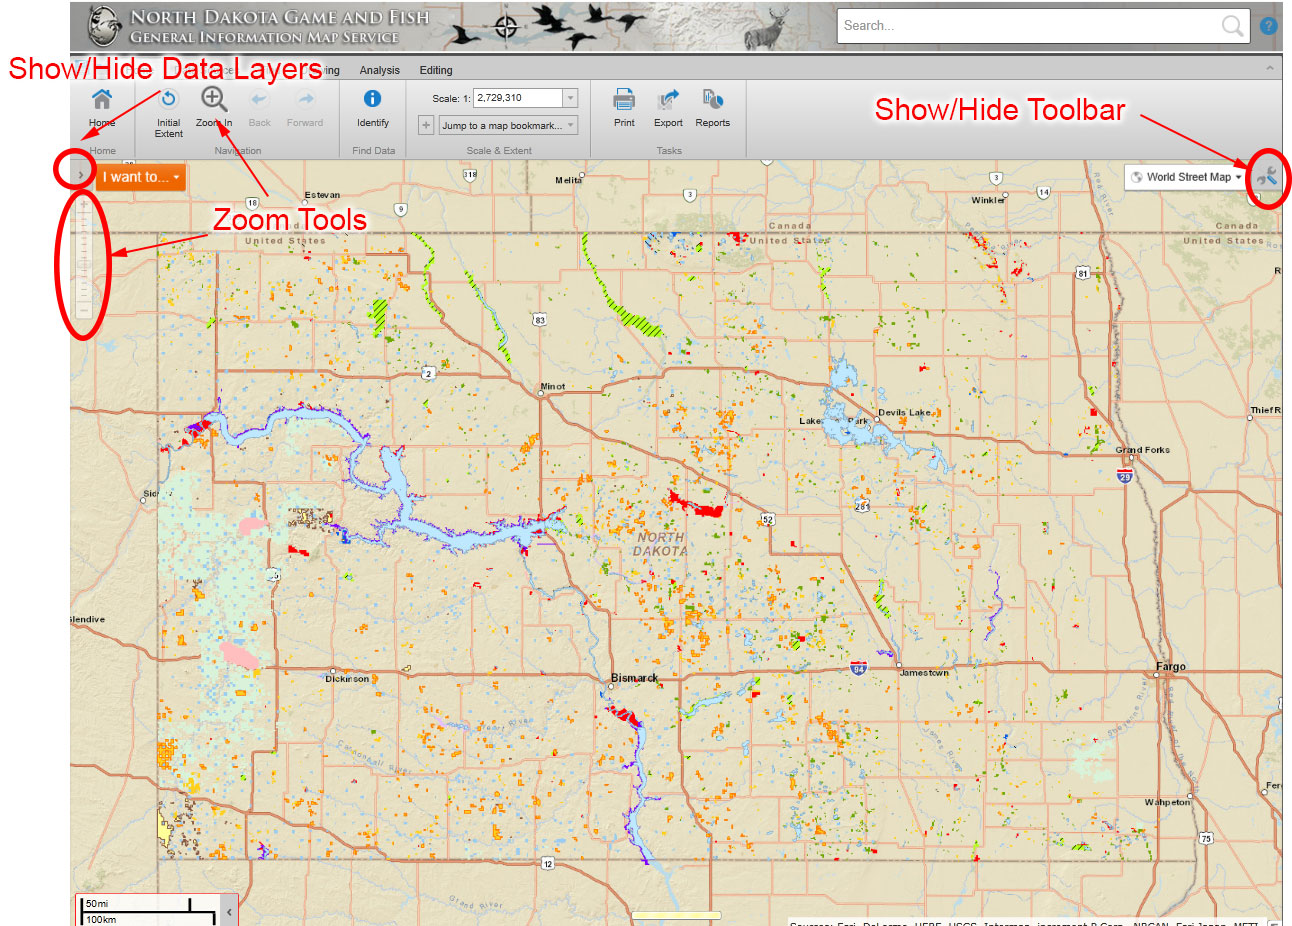 100 north dakota historical topographic maps free for Wyoming game and fish maps